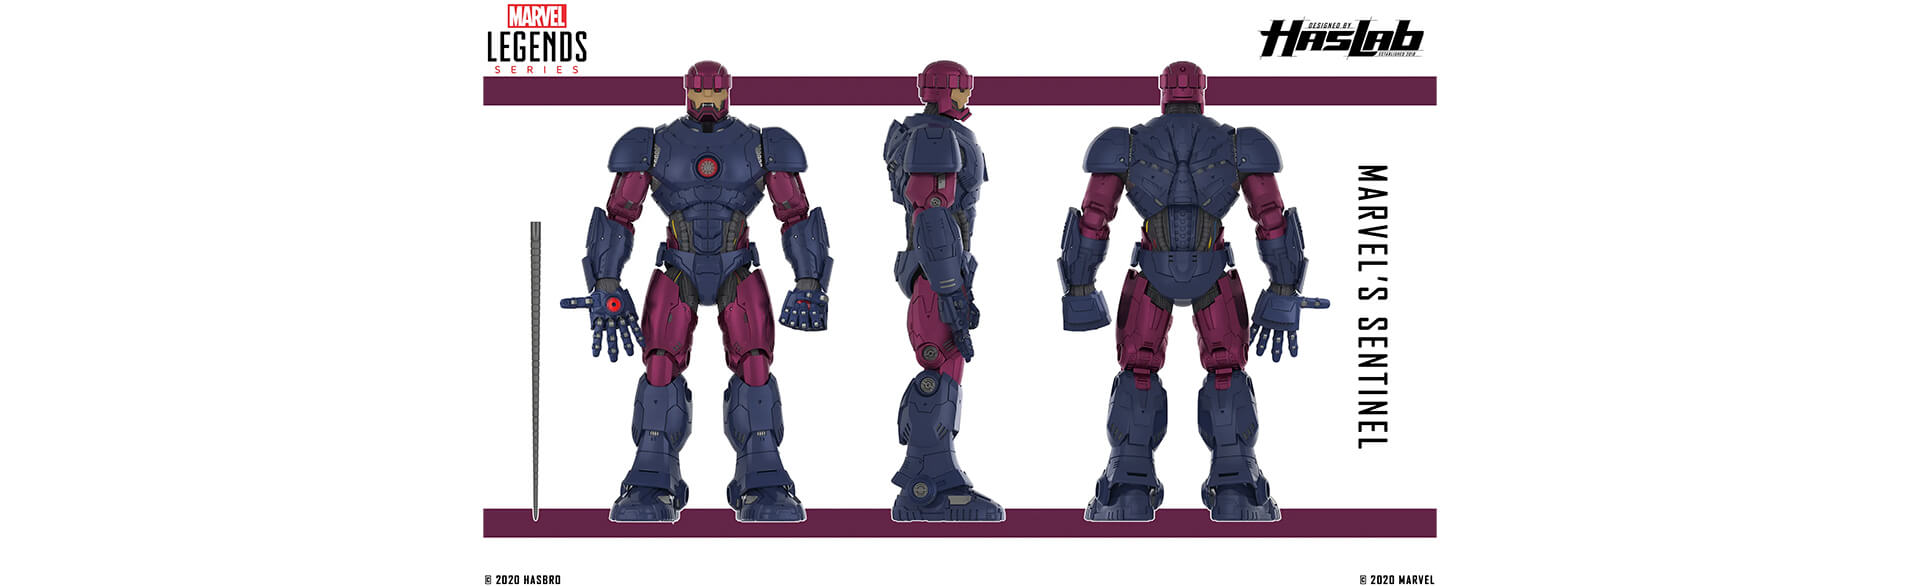 Marvel X-Men Sentinel Image from the Comic Books